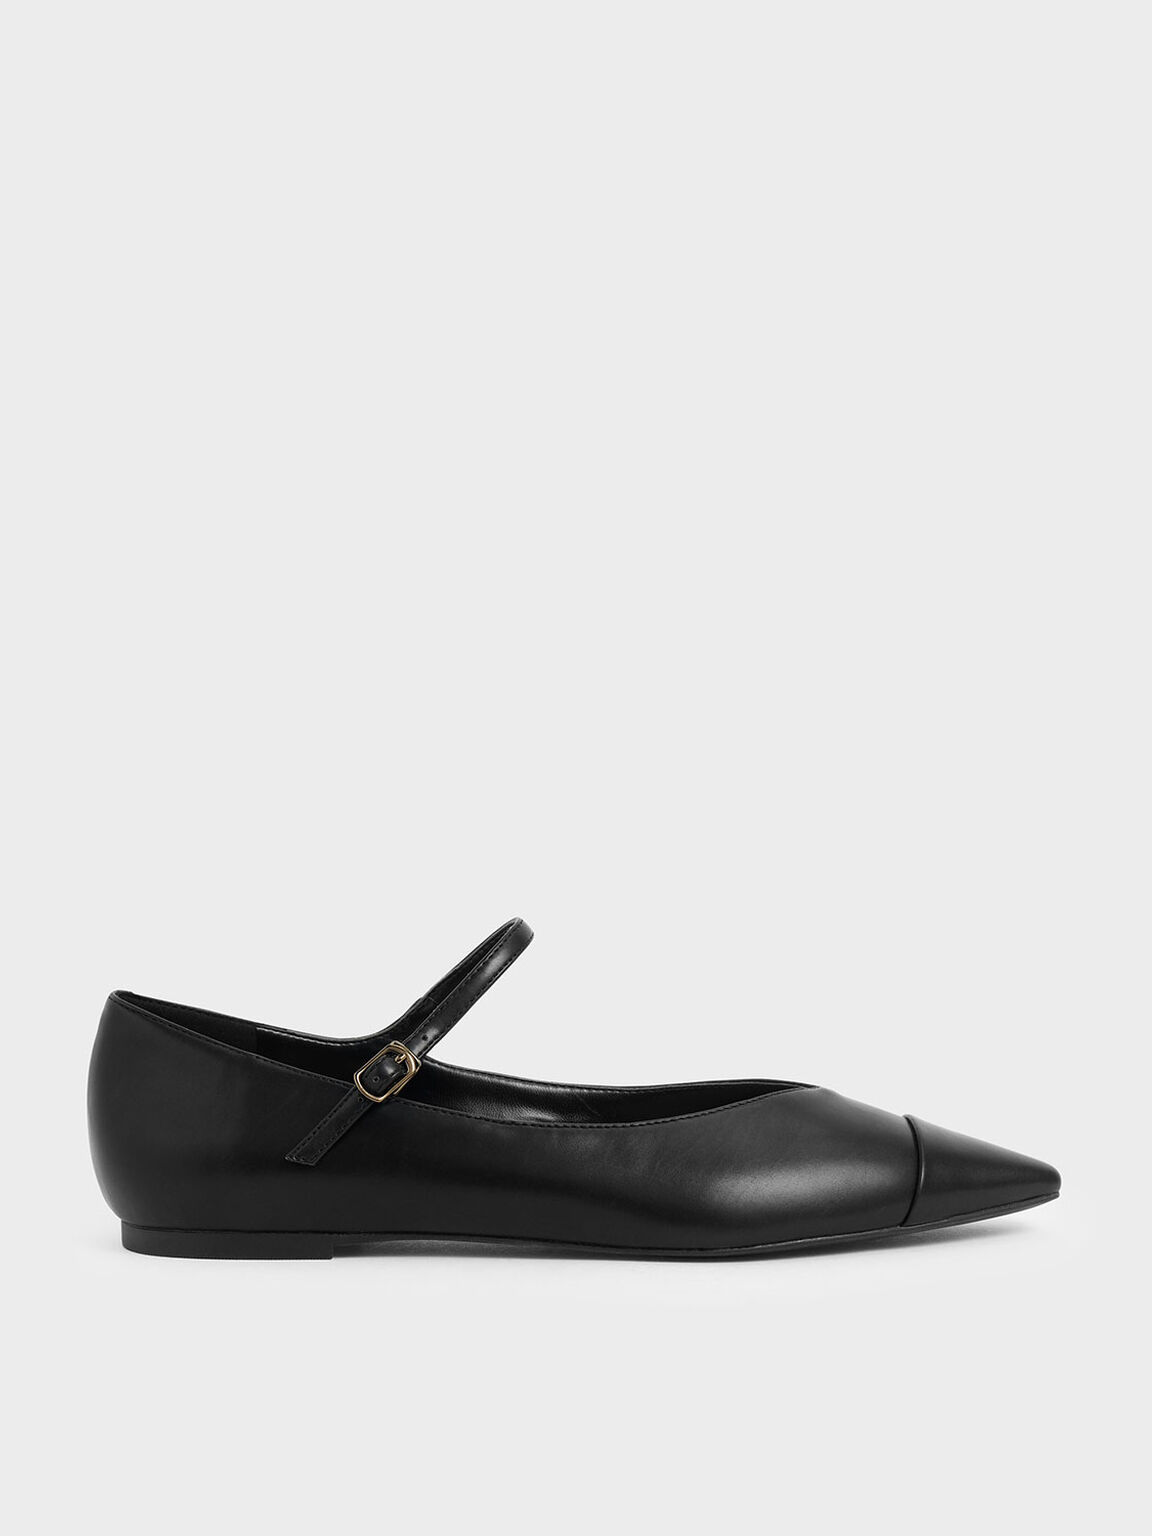 Pointed Toe Mary Jane Flats, Black, hi-res